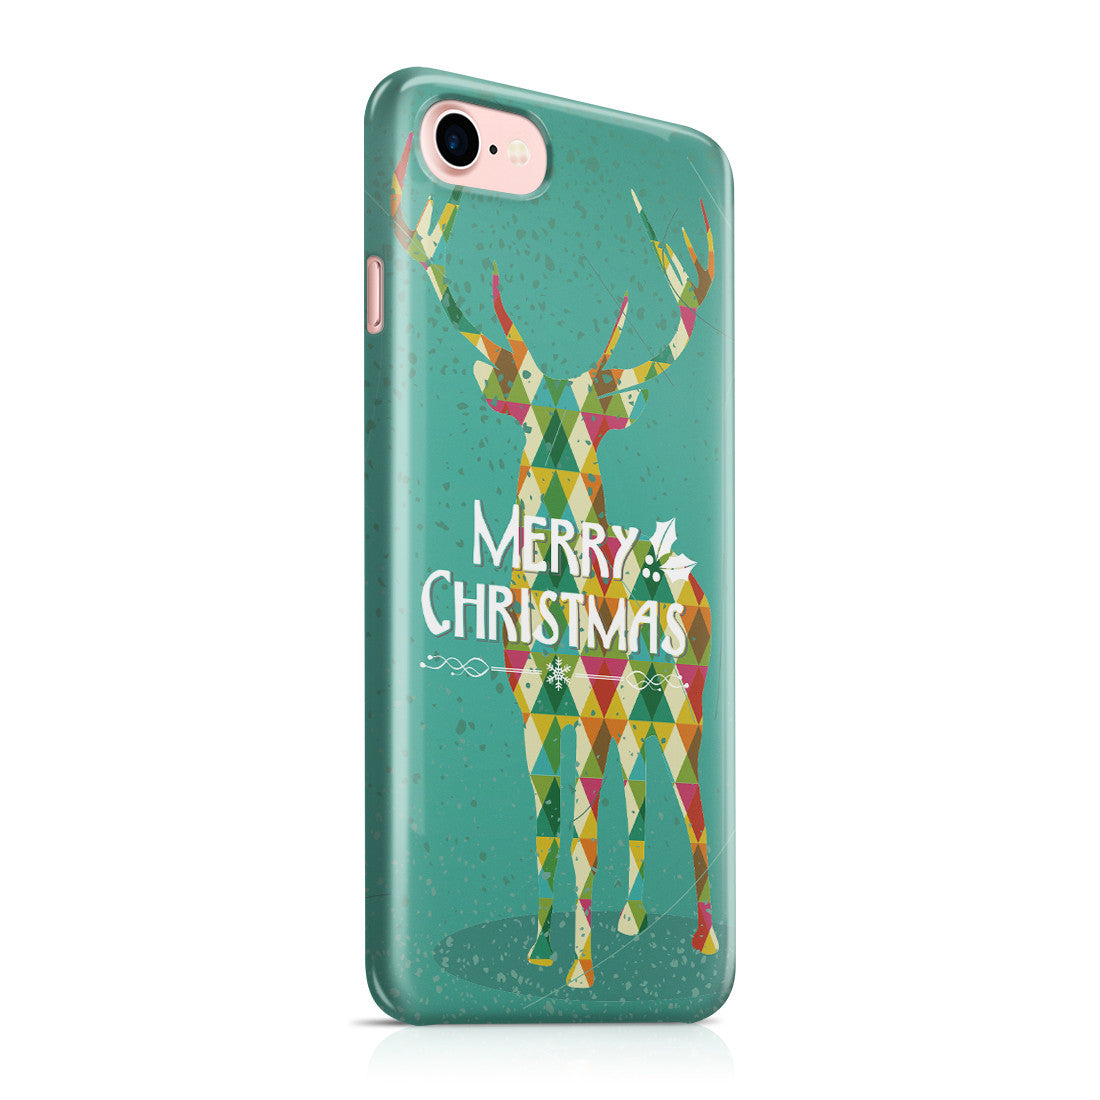 iphone 7 case merry christmas